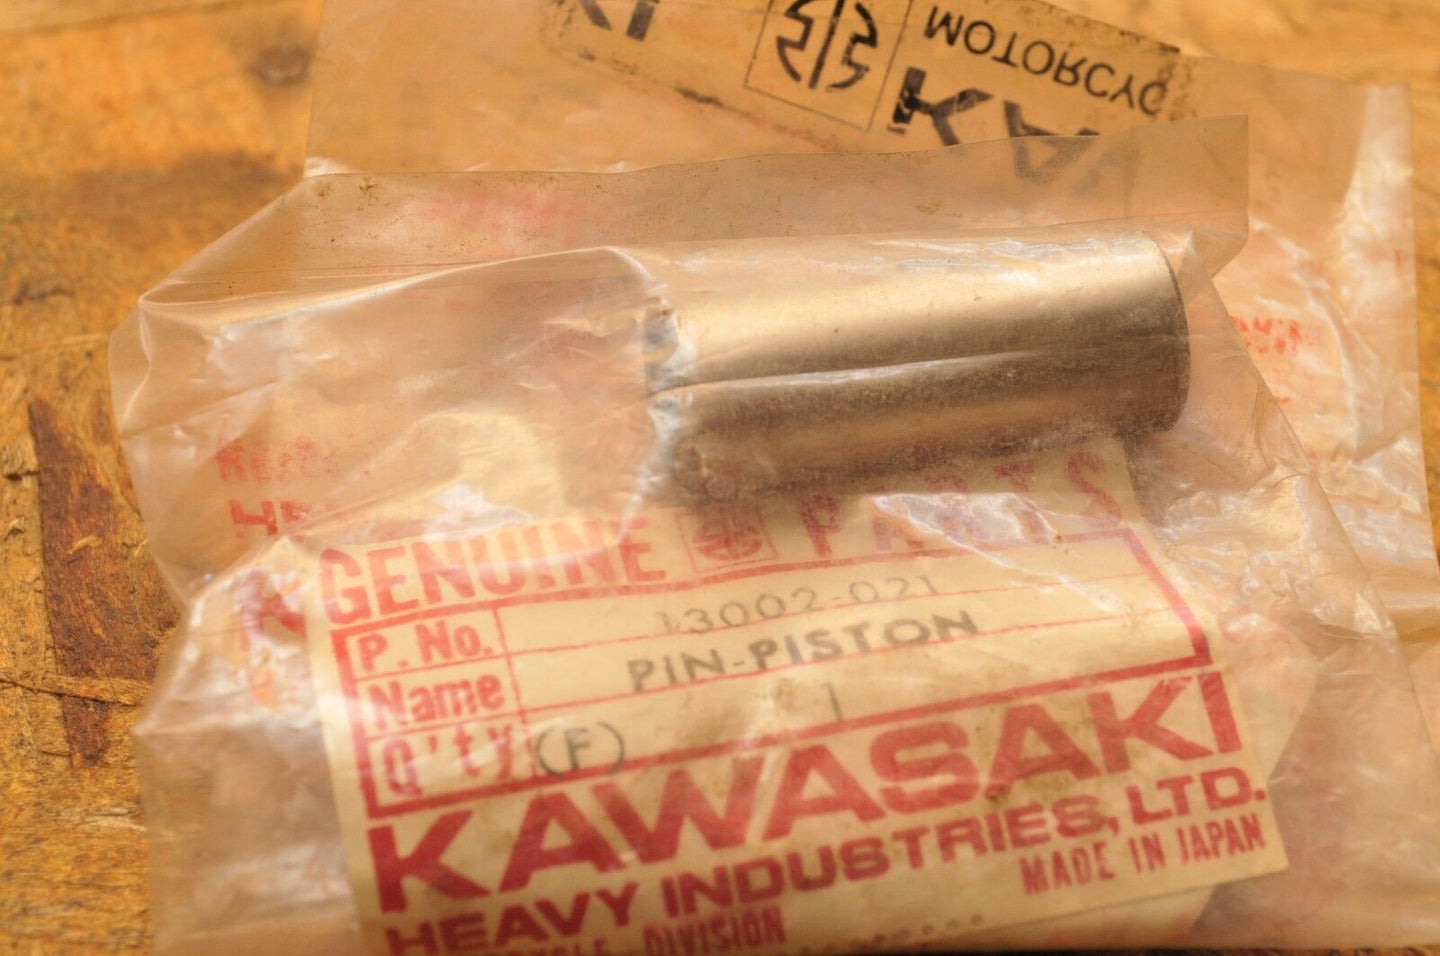 NEW NOS KAWASAKI WRIST PIN - PISTON 13002-021 KH250 S1 Mach I 1973-1976